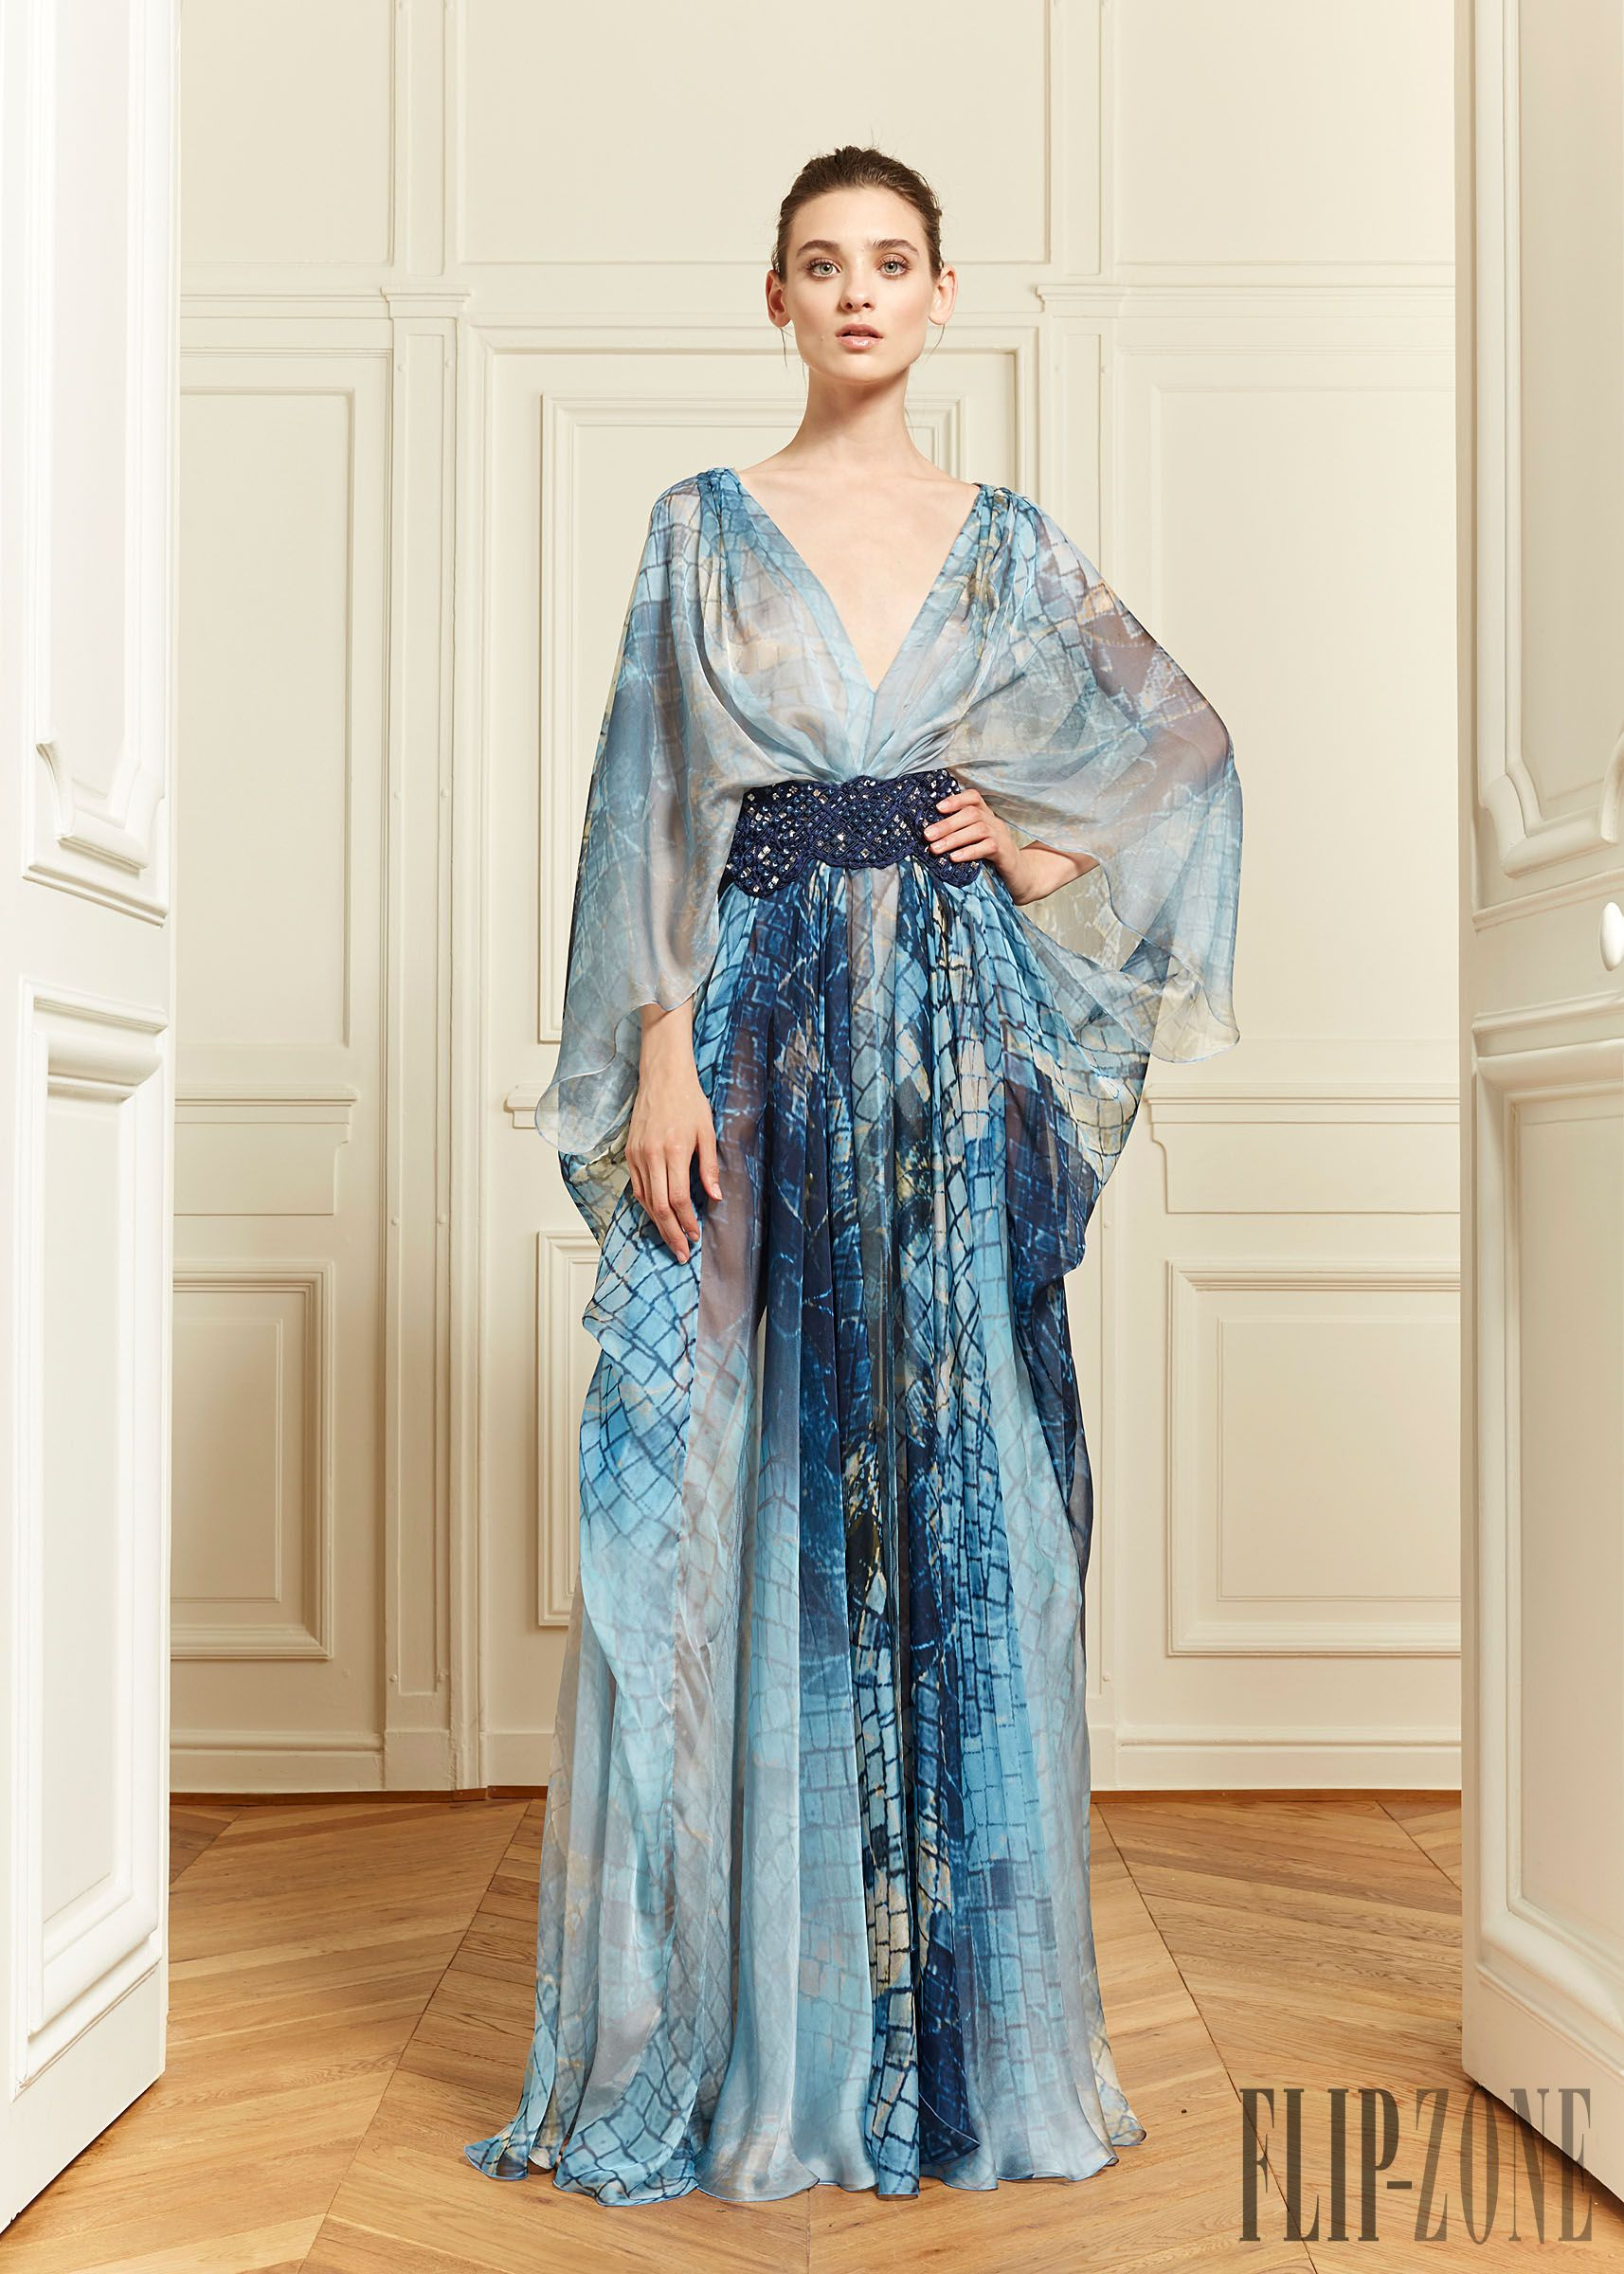 1d4d4b178ab See all the Collection photos from Zuhair Murad Spring/Summer 2014 Resort  now on British Vogue